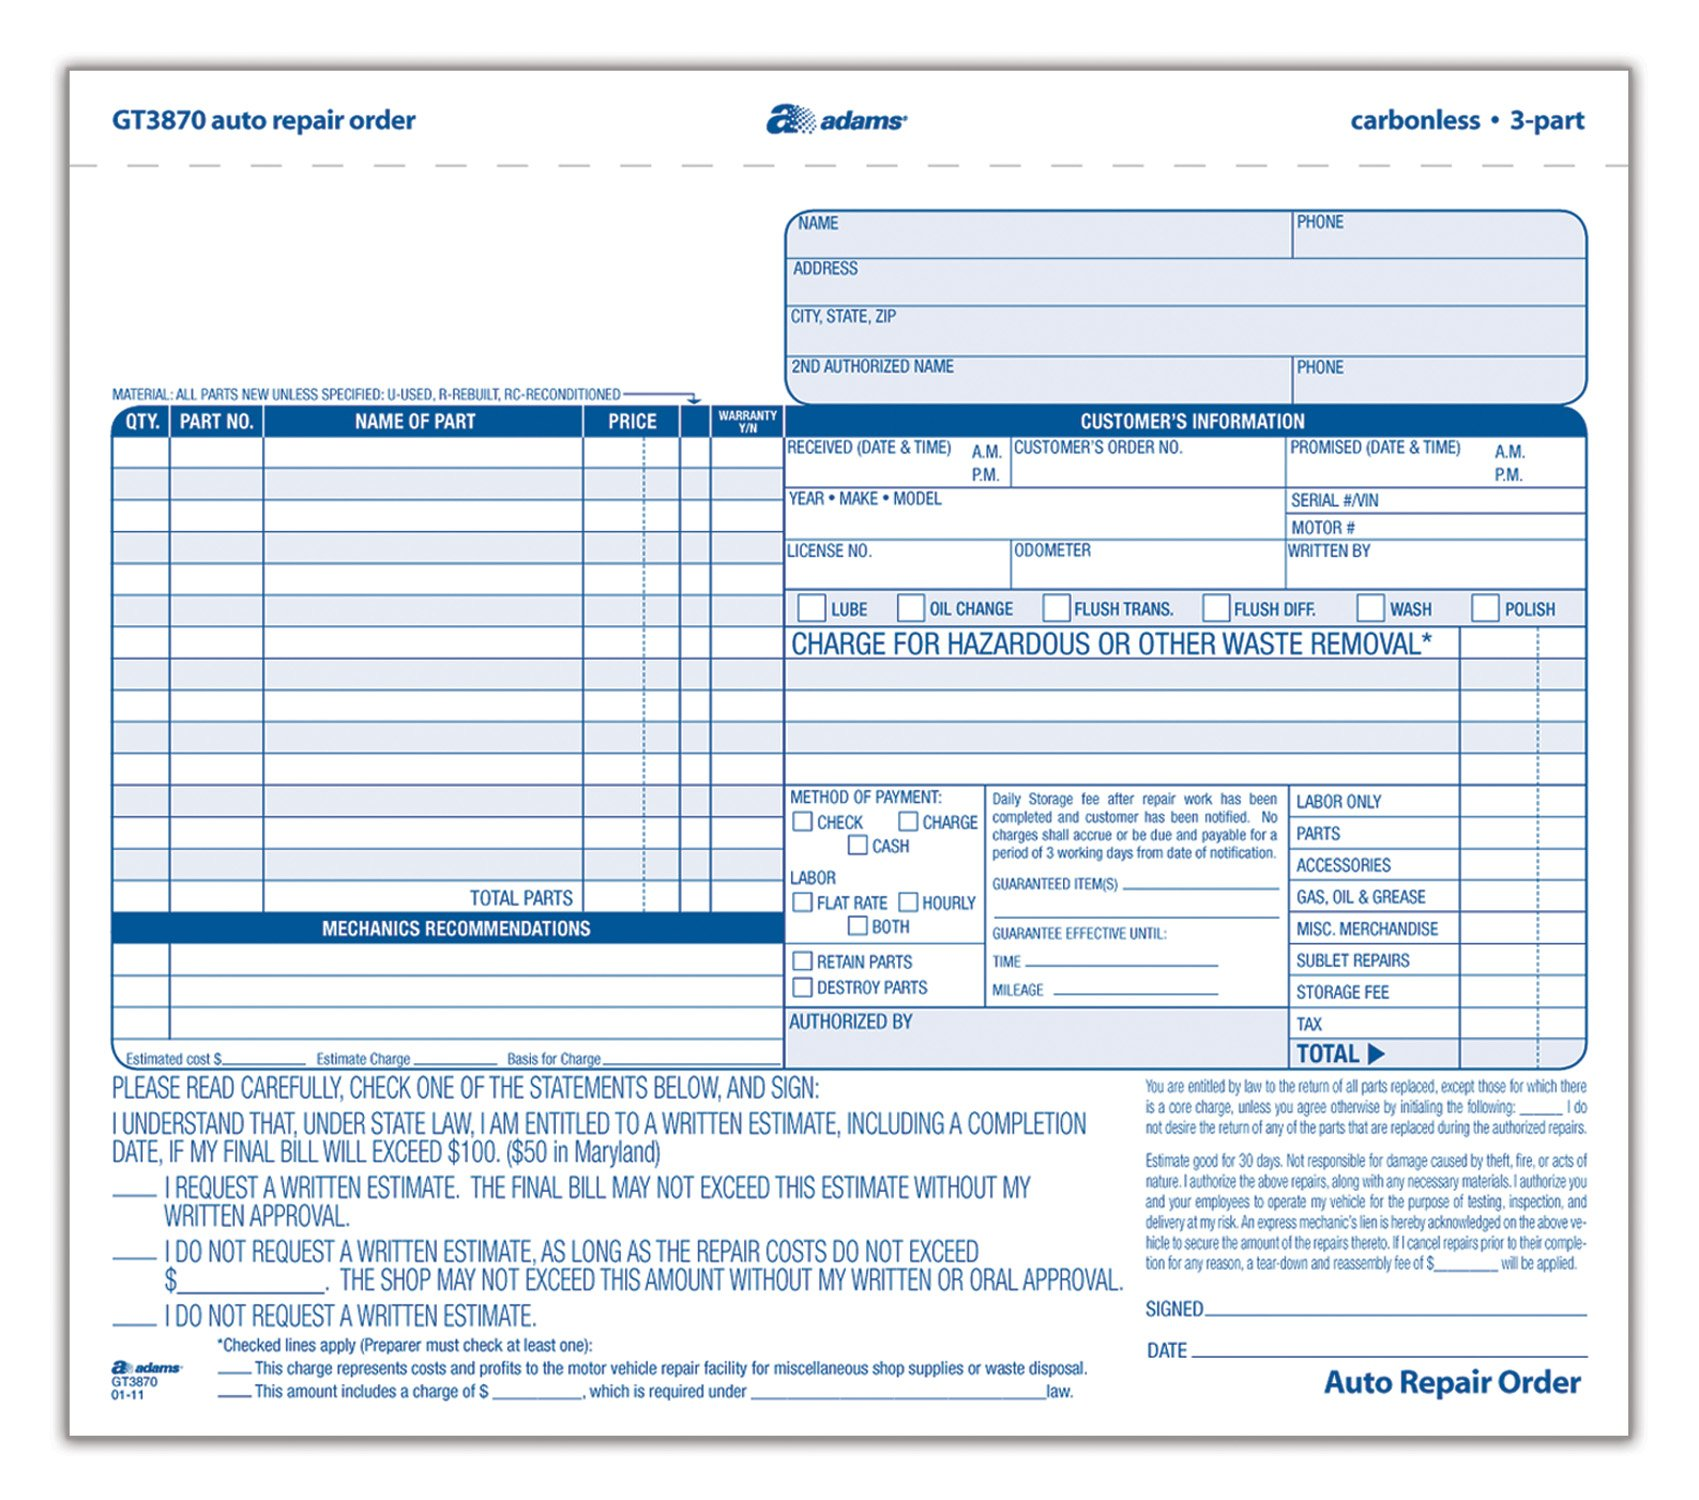 Best Rated In Sales Forms Invoice Forms Helpful Customer Reviews - Invoice forms templates free best online gun store